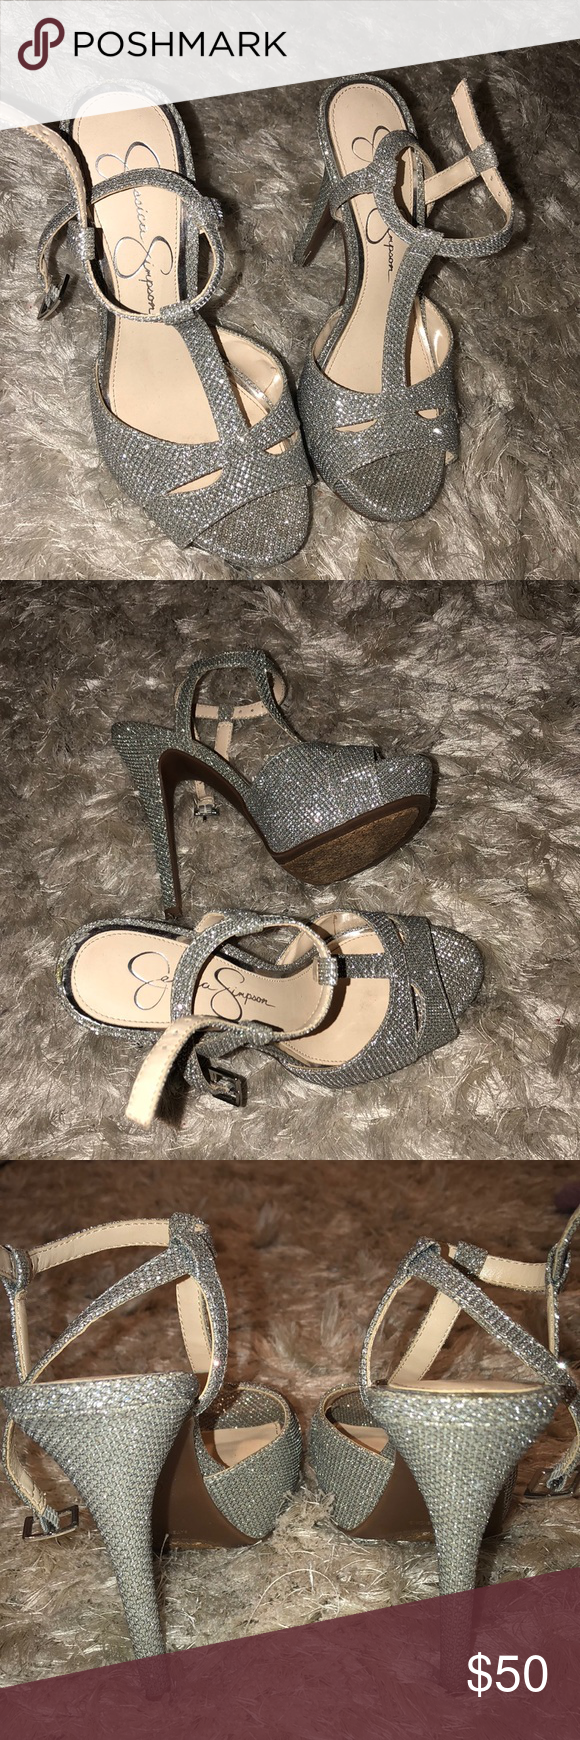 PERFECT SHOES FOR PROM Glitter look with out the glitter shedding fabulous Jessica Simpson shoes. Only wore once !! Jessica Simpson Shoes Heels